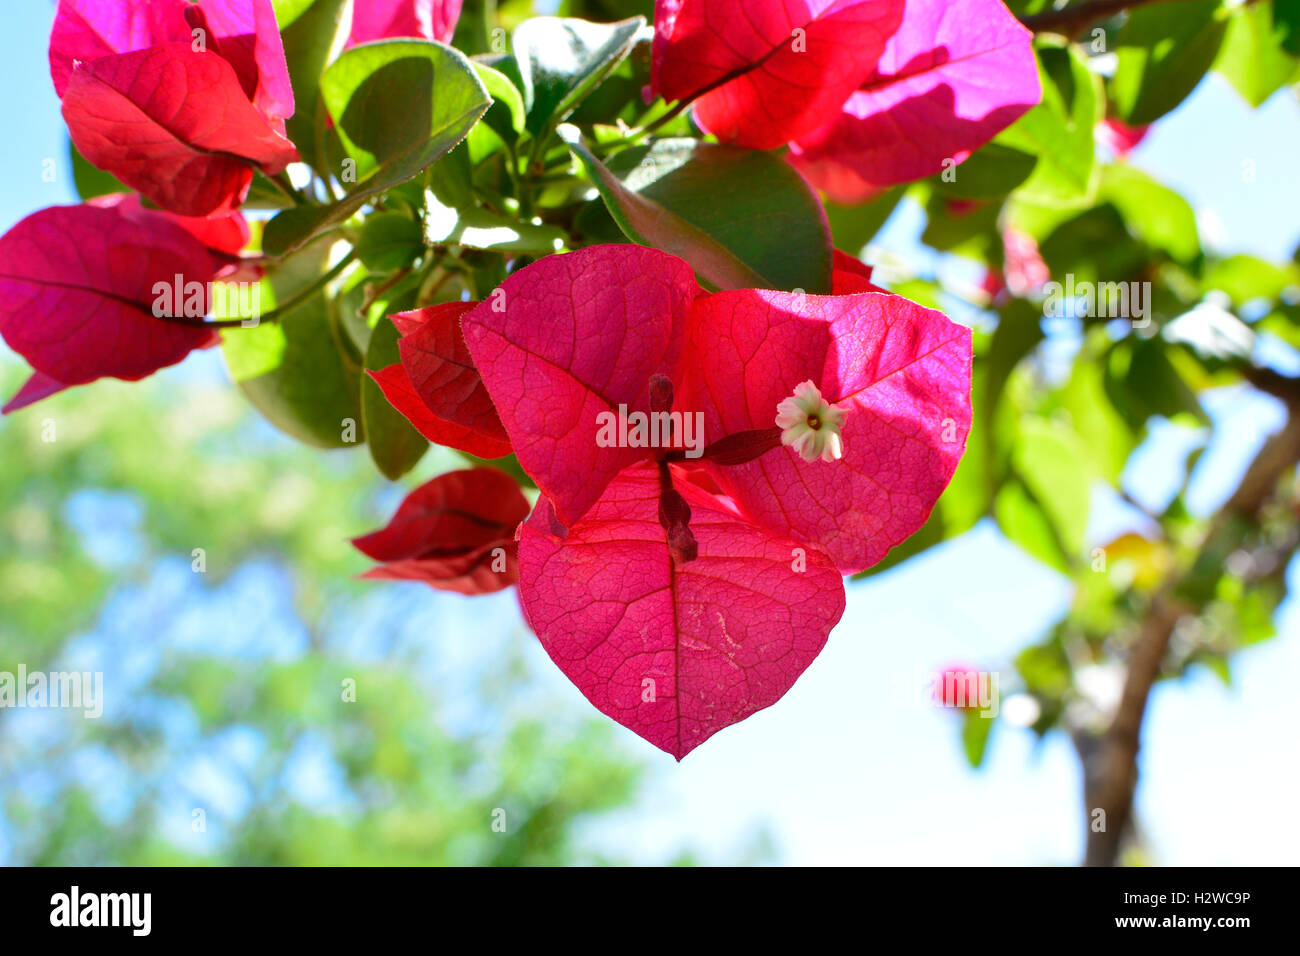 Red Bougainvillea flowers - Stock Image